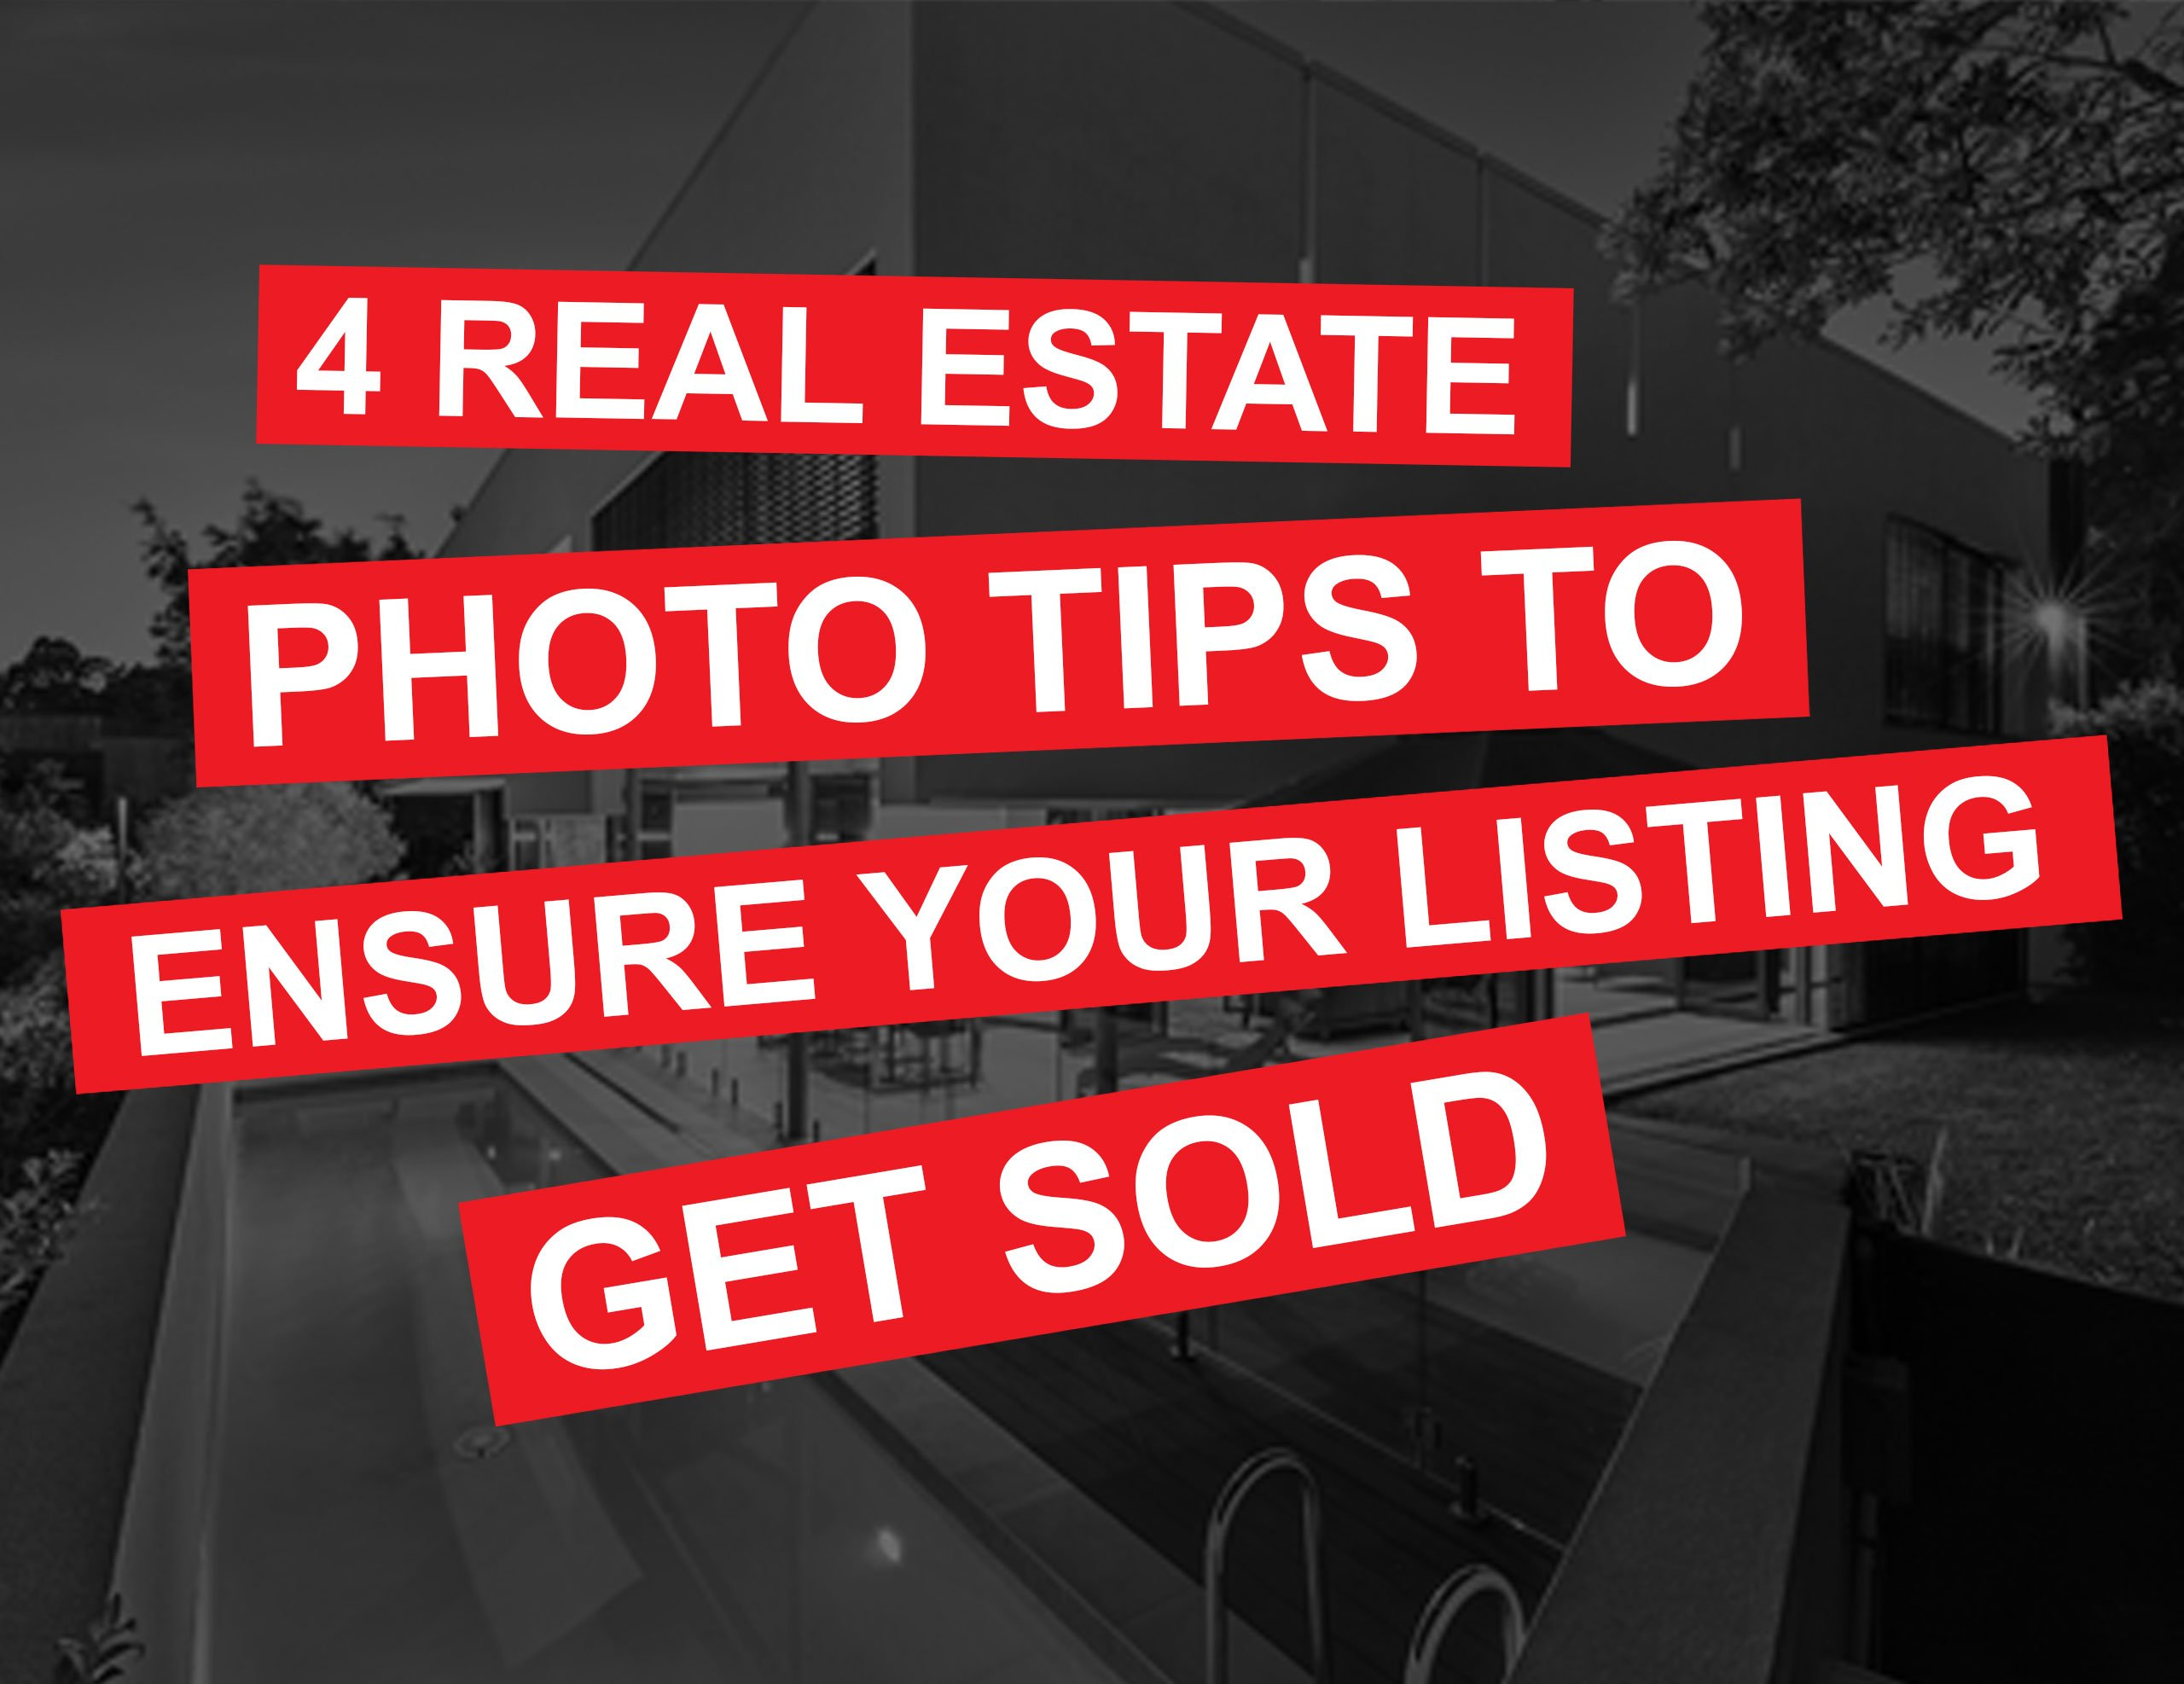 4-Real-Estate-Photo-Tips-To-Ensure-Your-Listings-Get-Sold